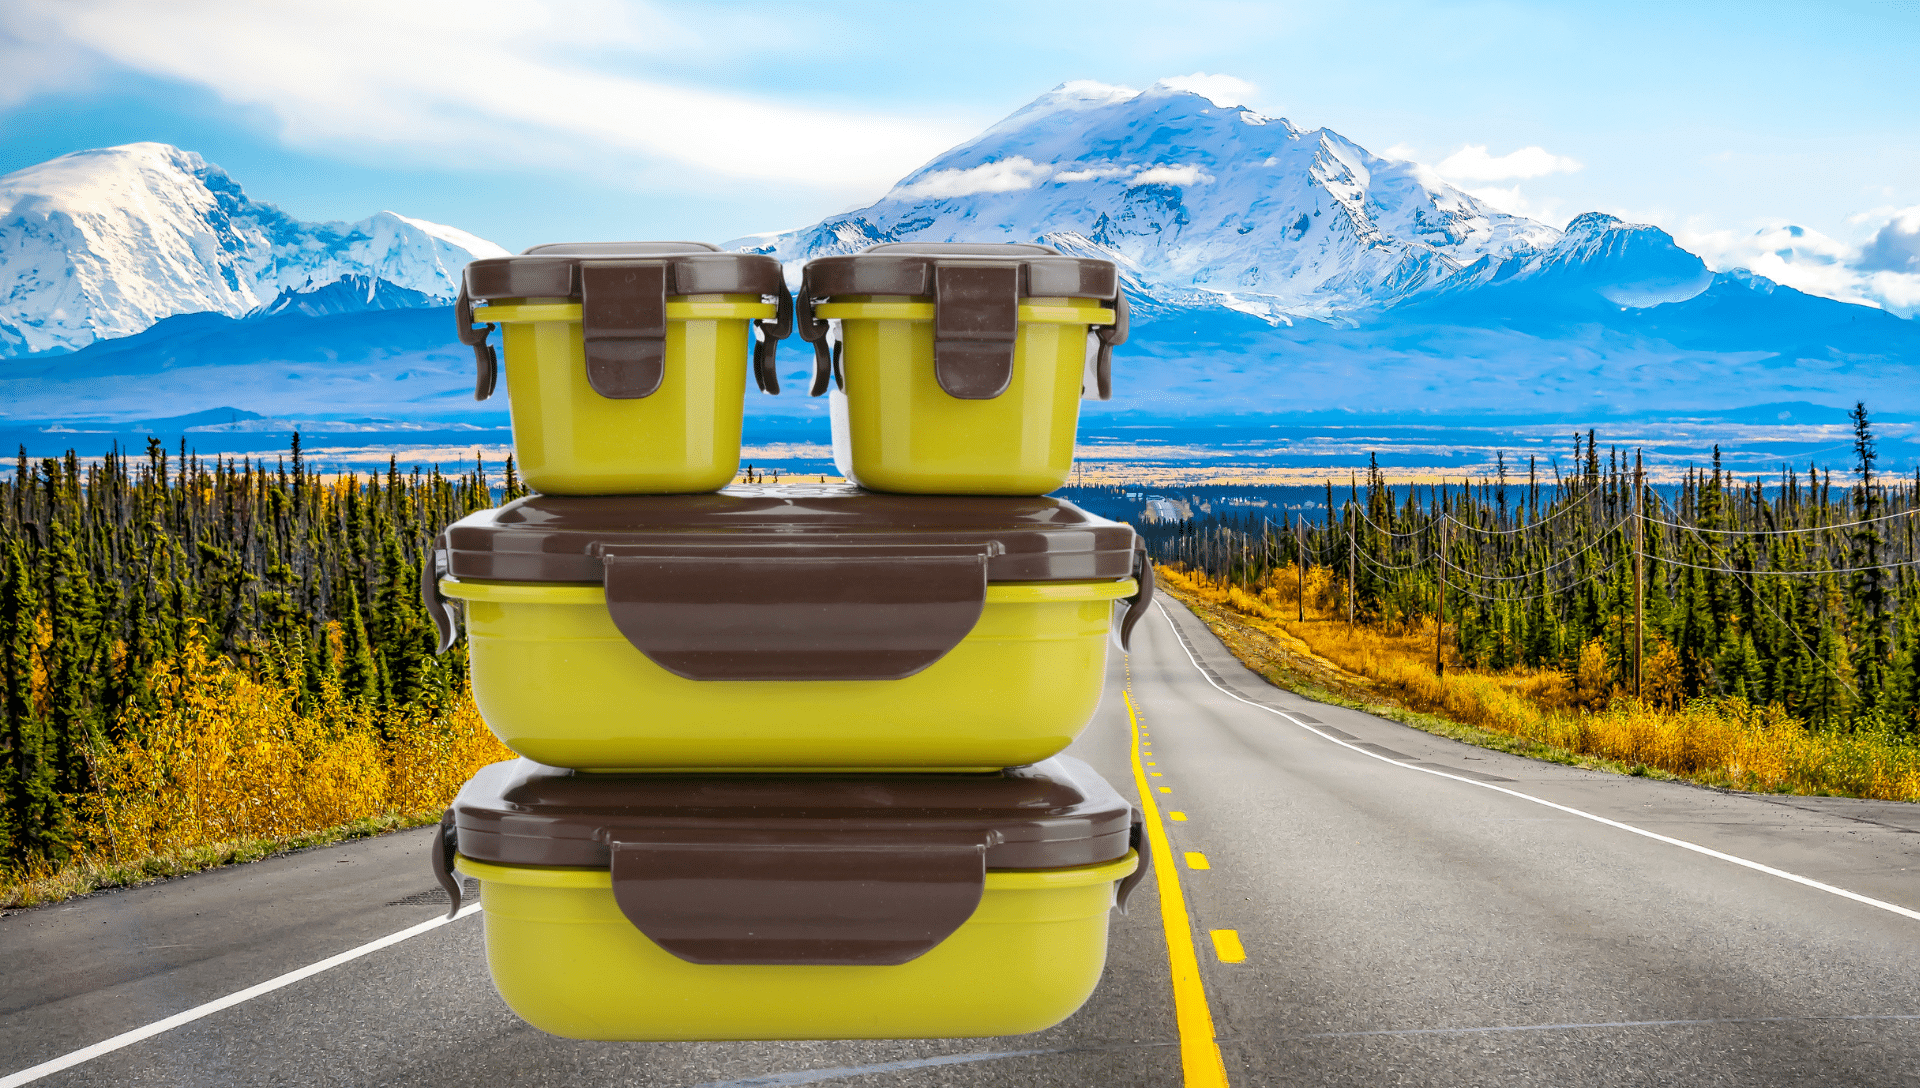 Plastic snack containers are stacked and situated in front of a roadway backdrop with mountains. These containers contain healthy road trip snacks.